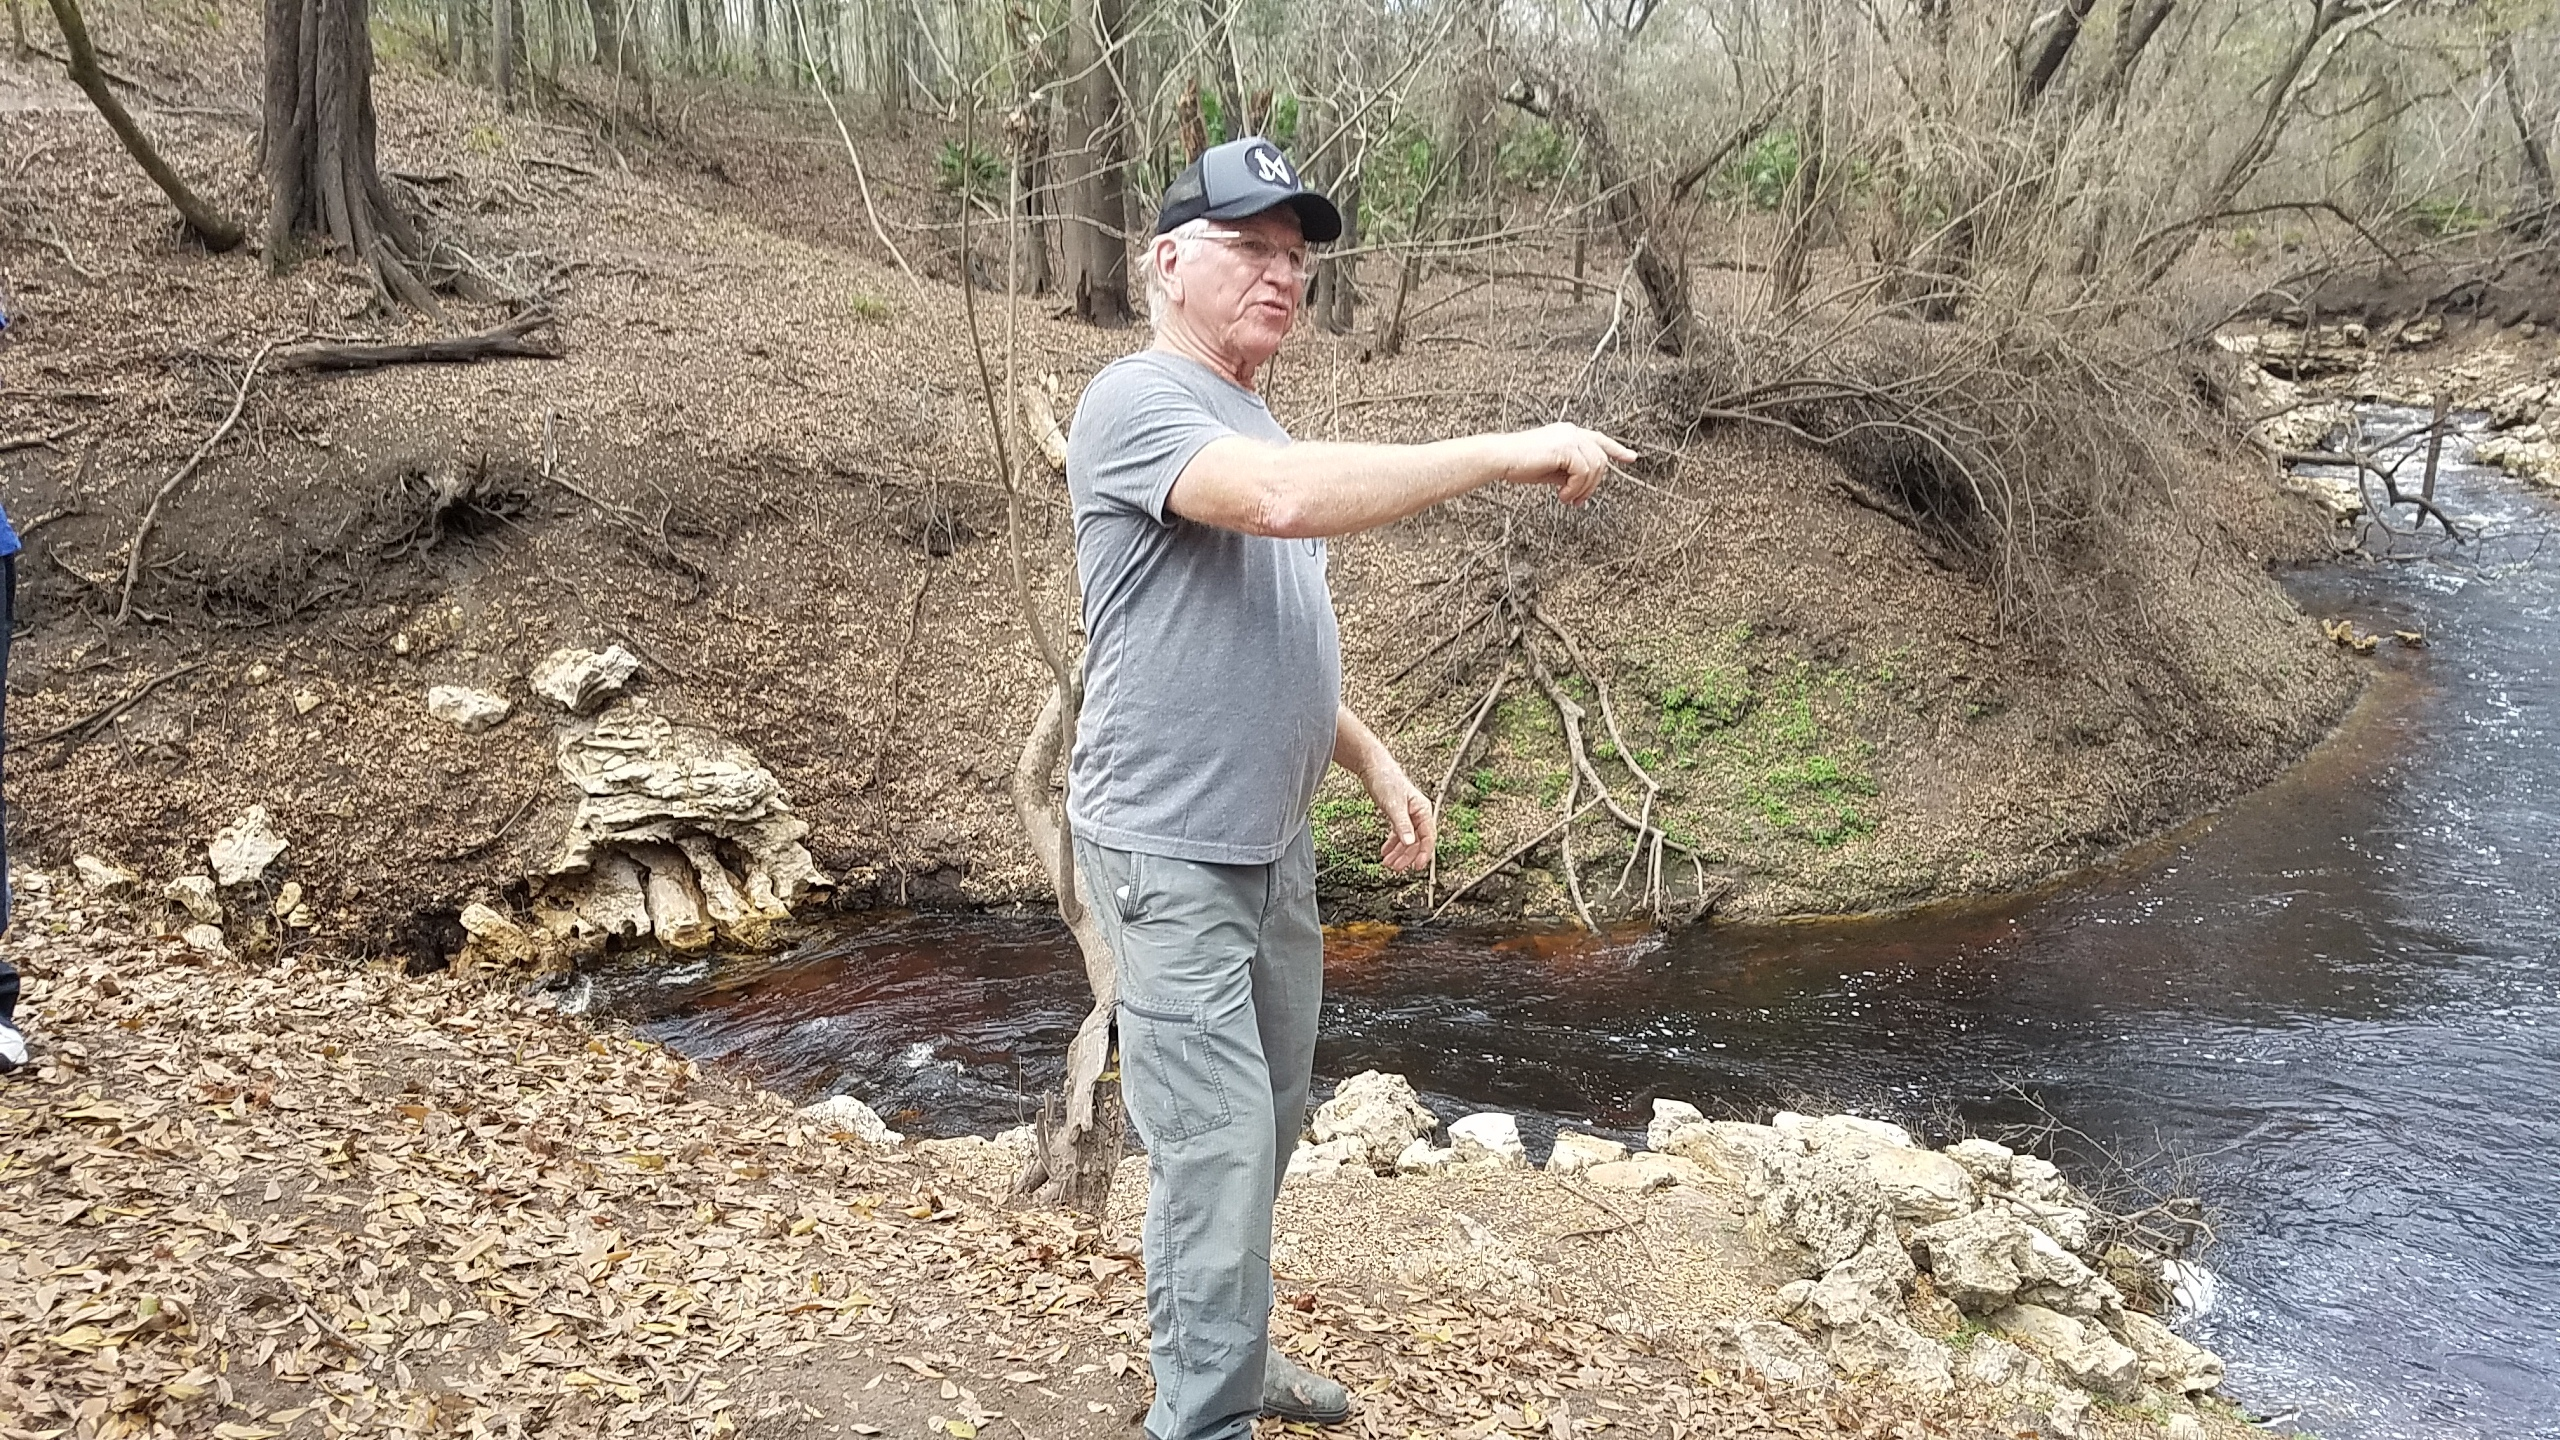 2560x1440 Dennis Price explains, Down to a sunless sea, in Hike to the Dead River Sink, by John S. Quarterman, for WWALS.net, 27 January 2018